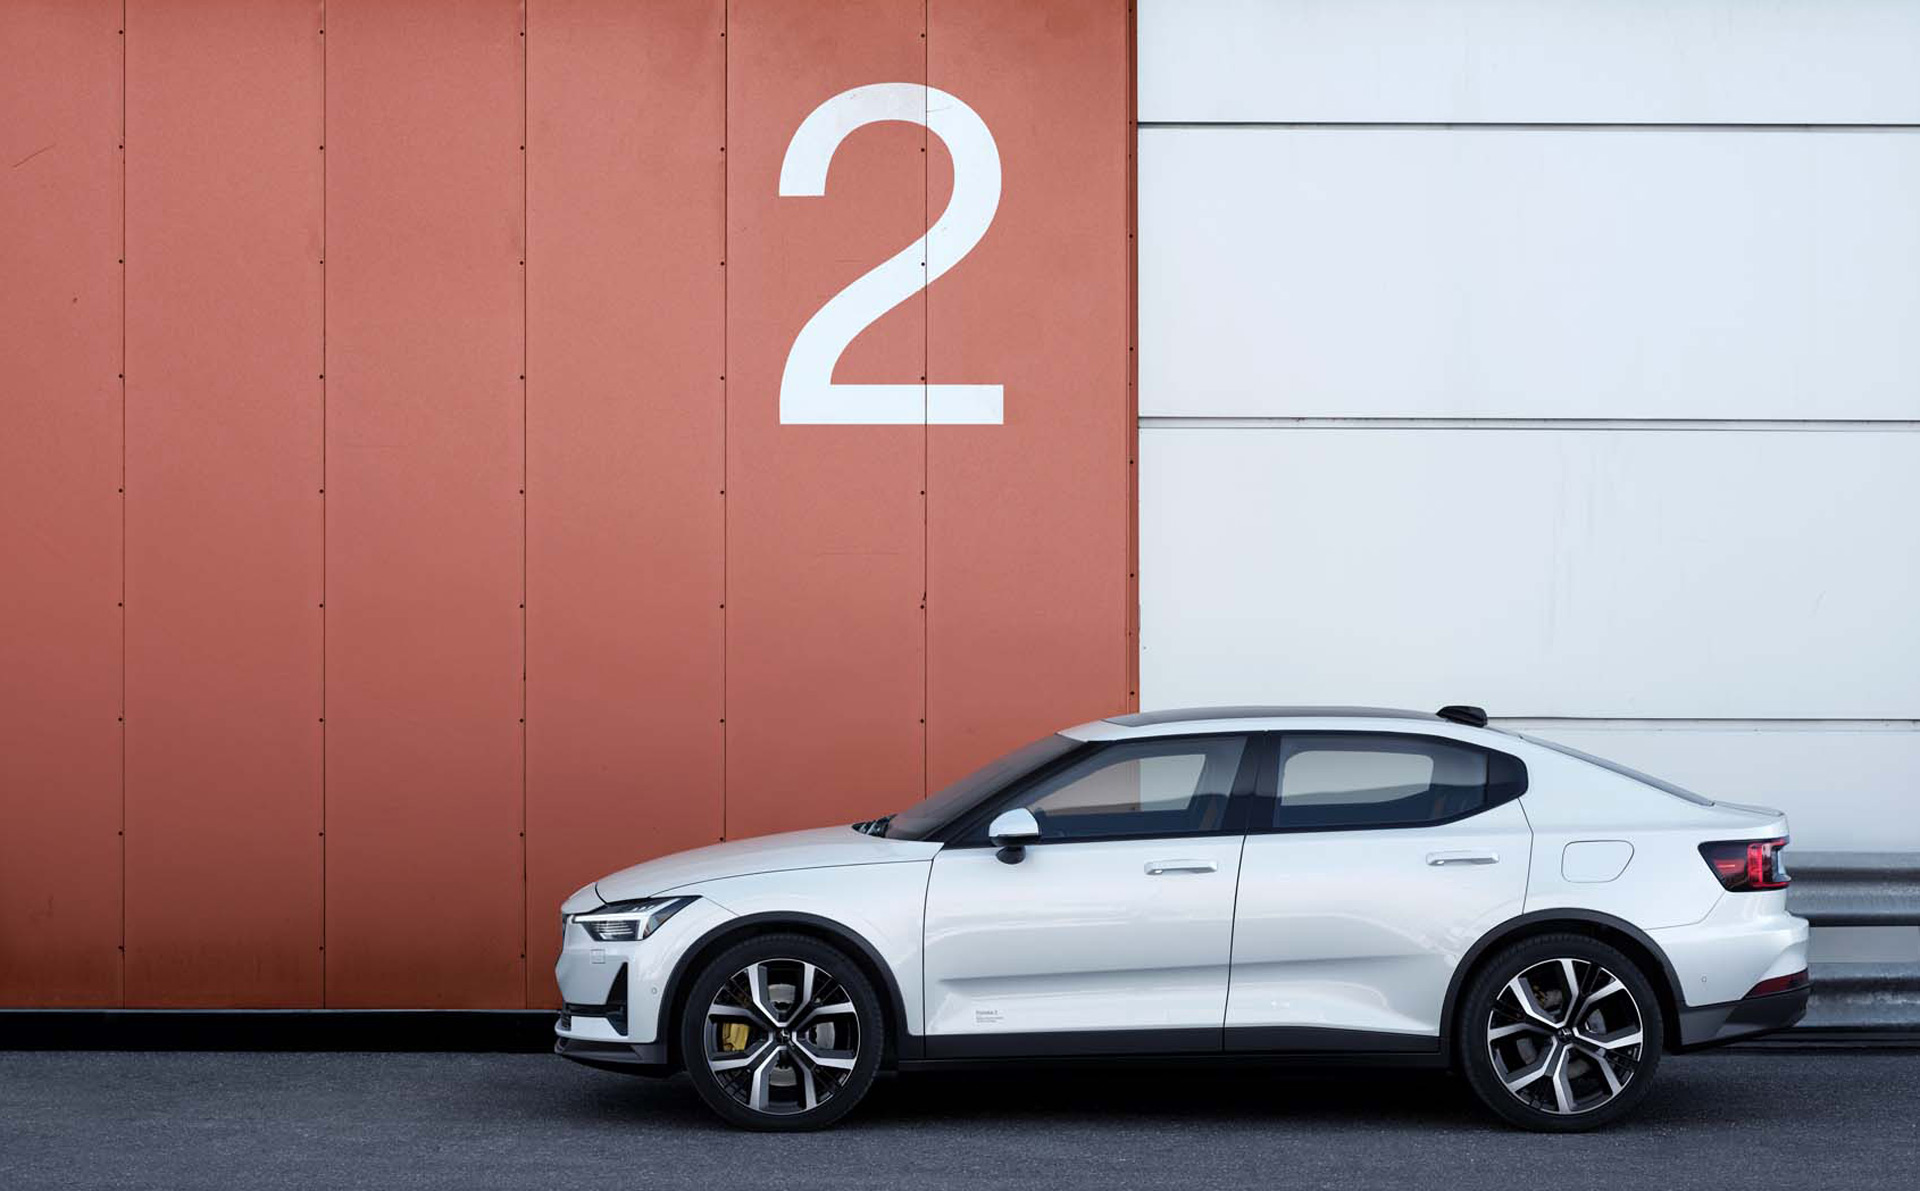 Volvo's Polestar 2 debut as fully electric sports car aimed for purchase or subscription in 2020.